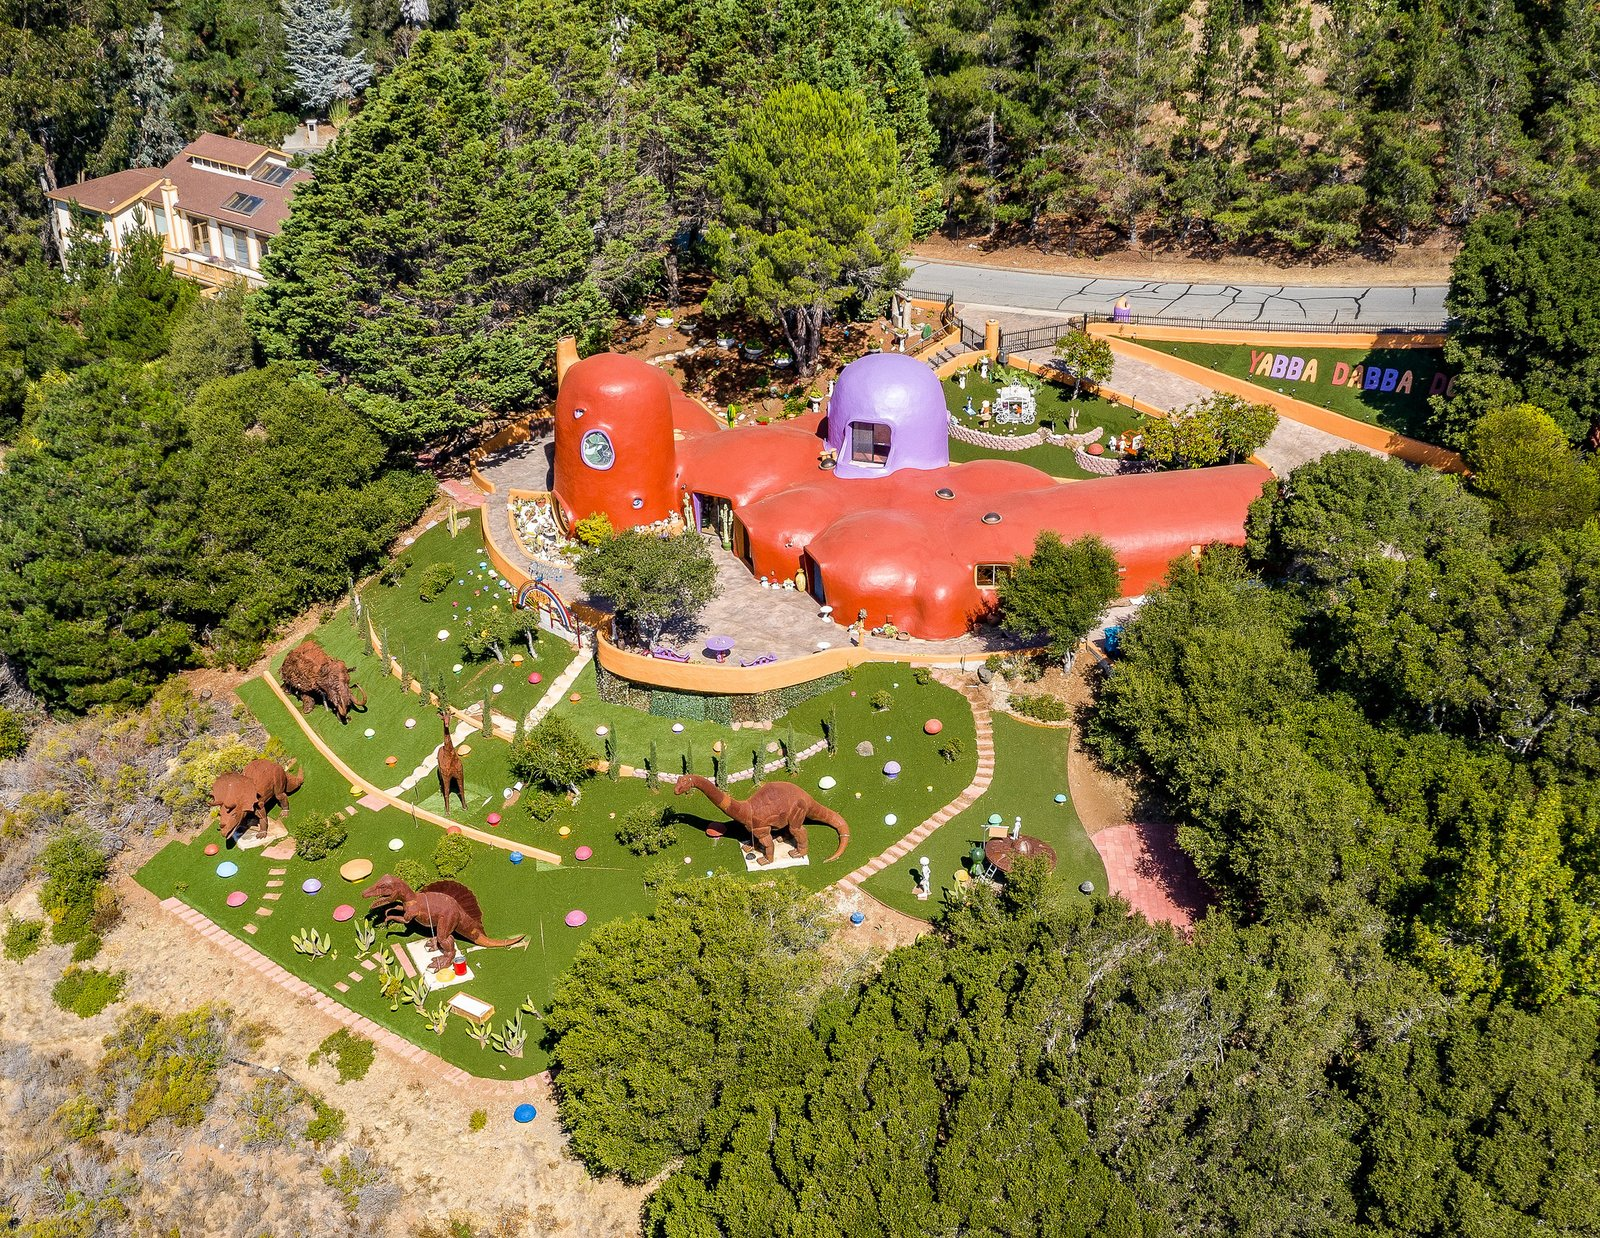 Northern California's Infamous Flintstone House Is Being Sued as a 'Public Nuisance'